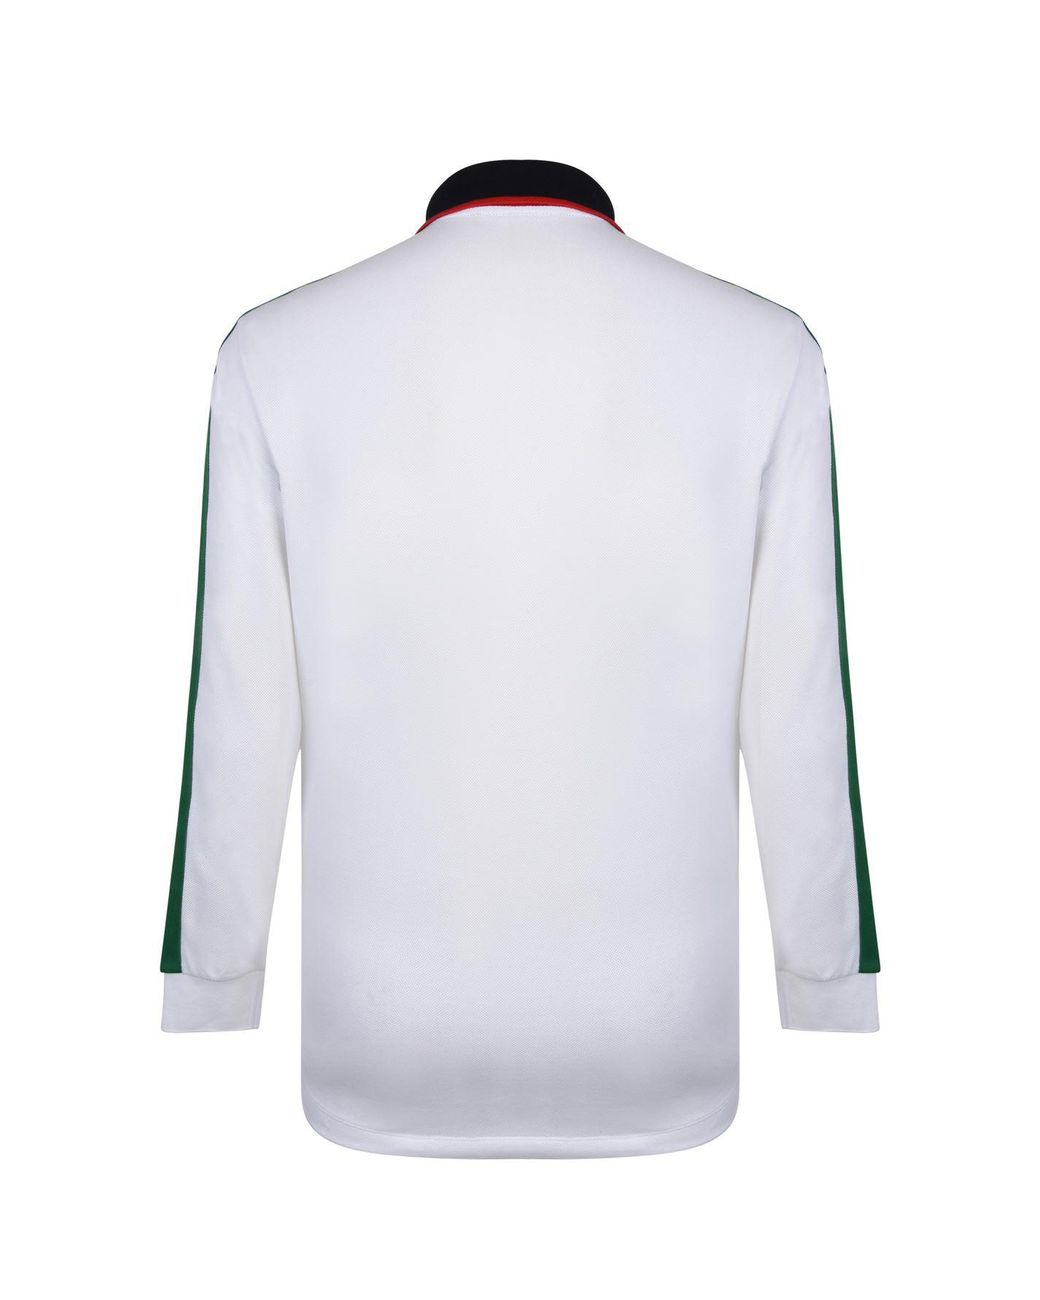 1ae79986e33 Lyst - Gucci Tape Long Sleeve Polo Shirt in White for Men - Save 11%